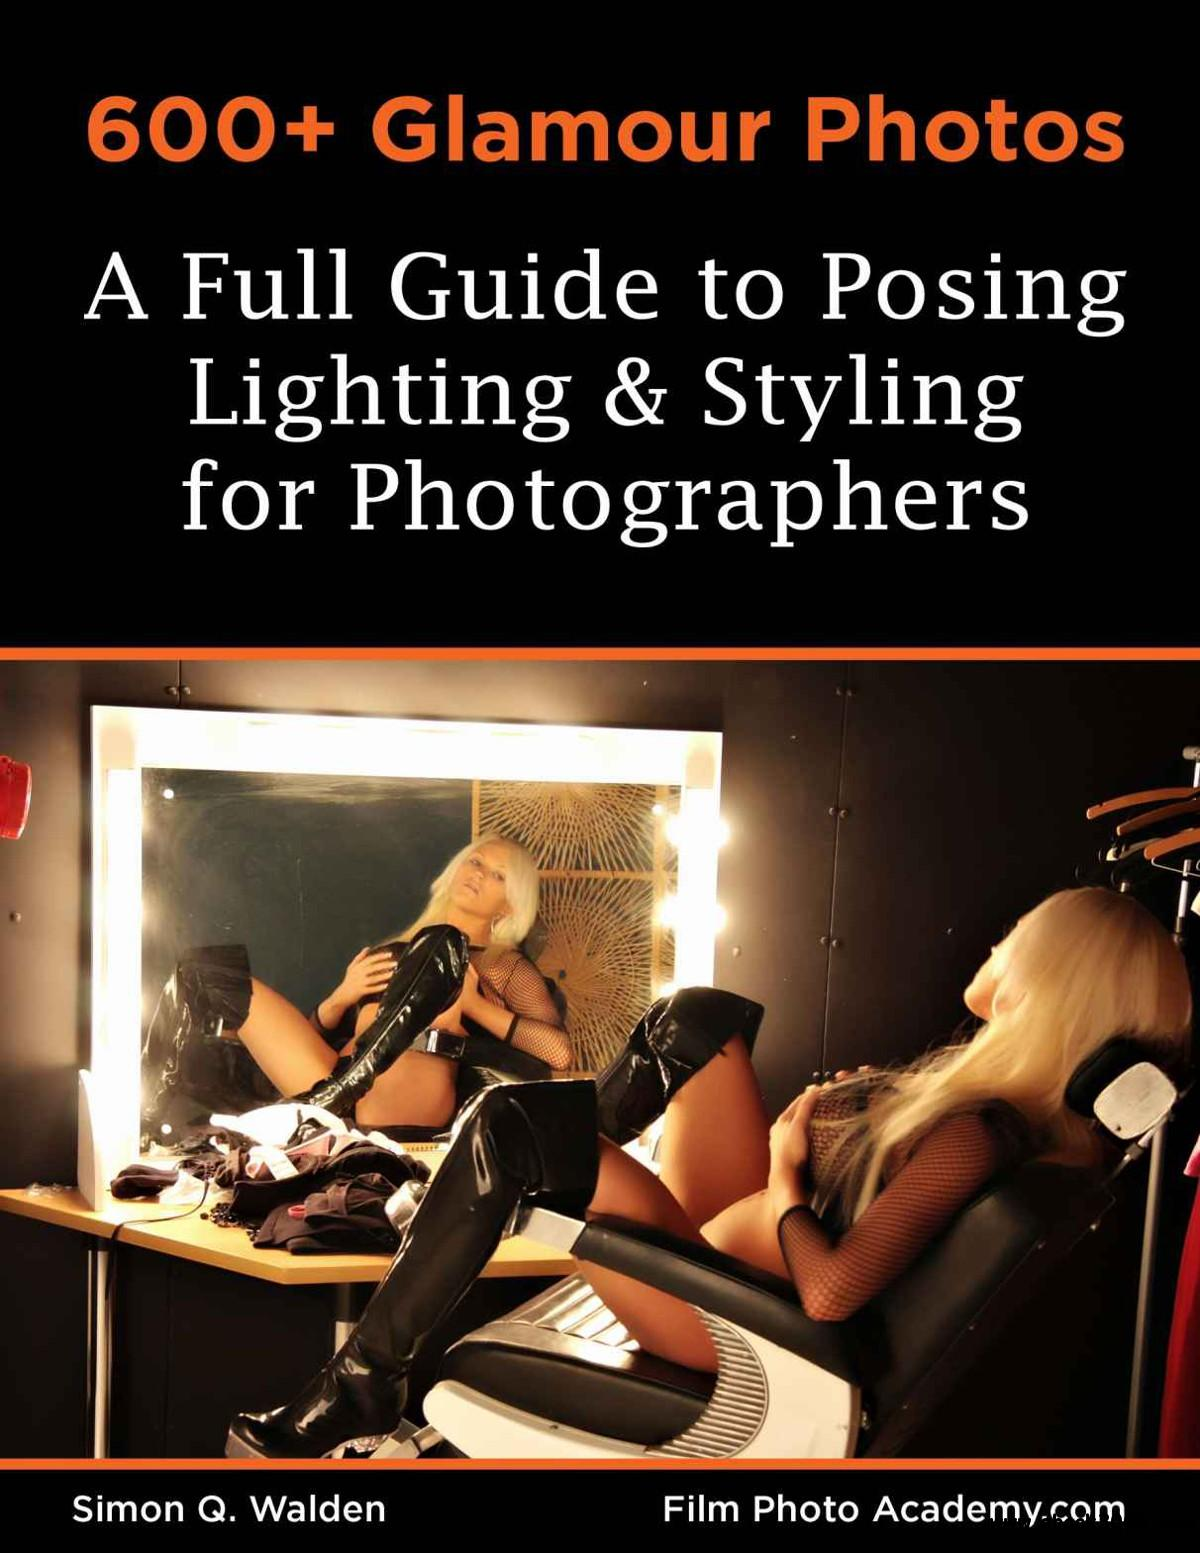 600+ Glamour Photos: a Full Guide to Posing, Lighting and Styling for Photographers free download